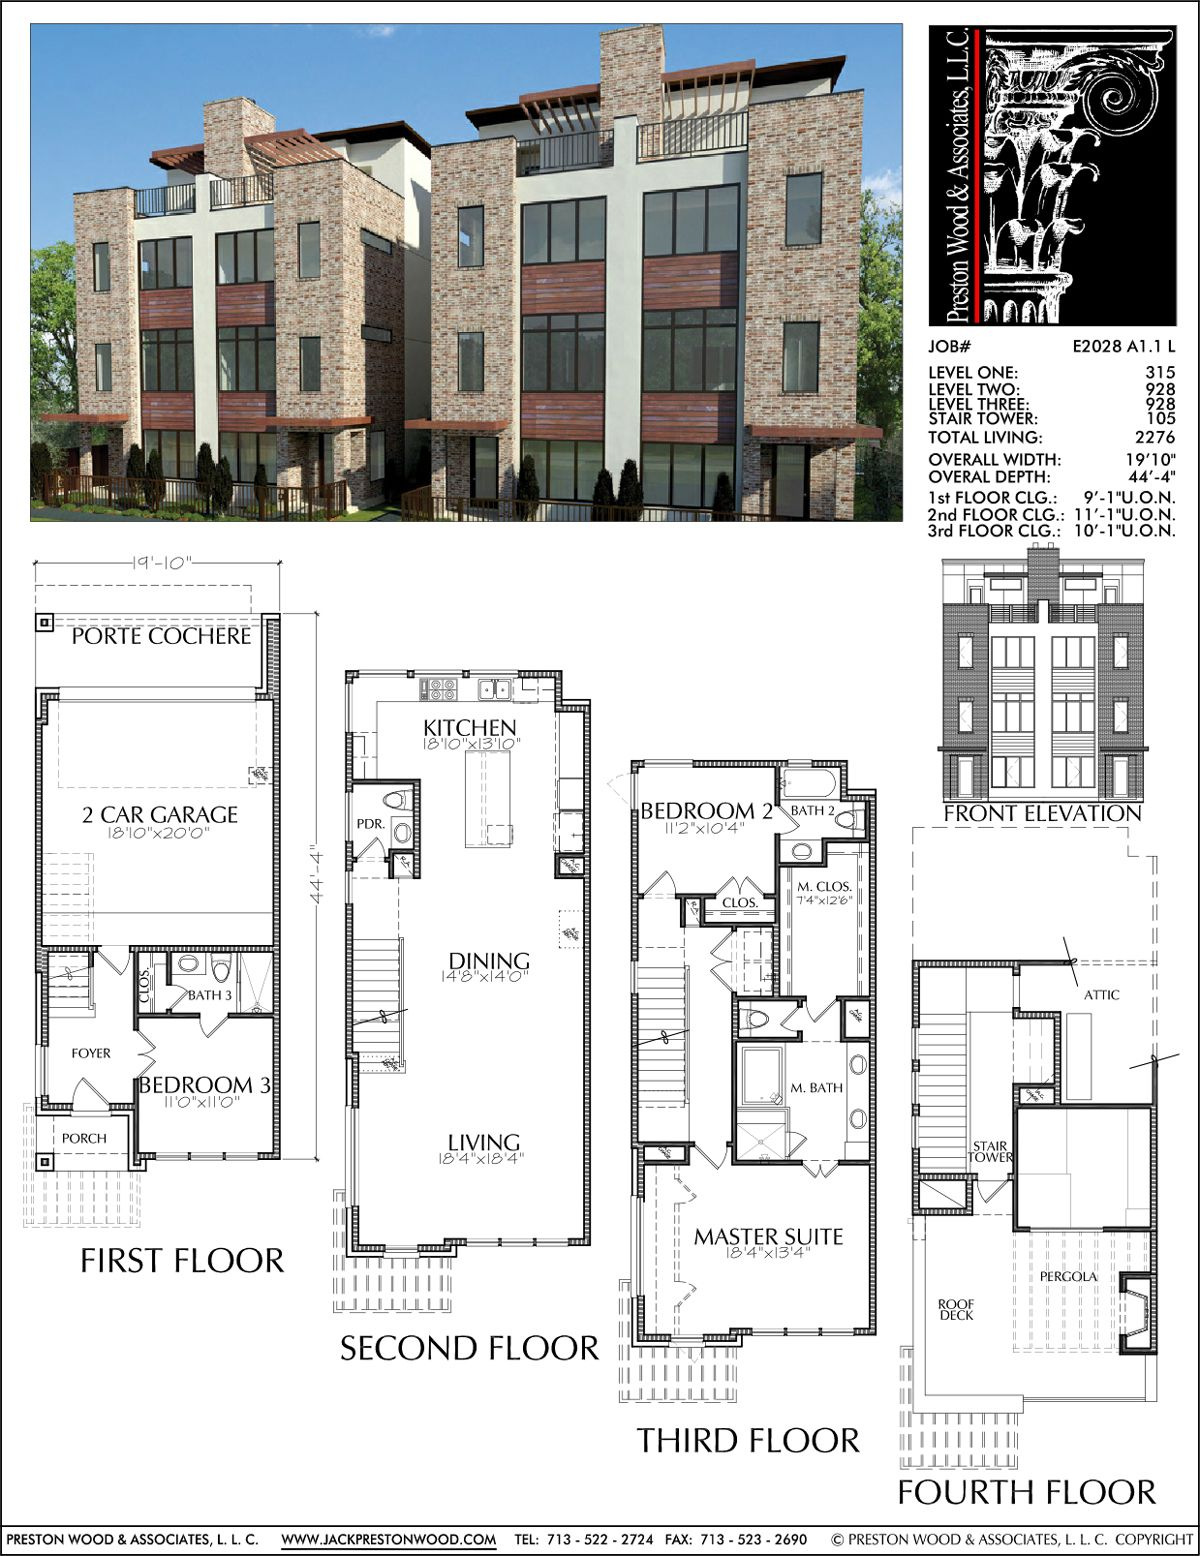 Duplex townhome plan e2028 a1 1 small modern house for Luxury townhome floor plans